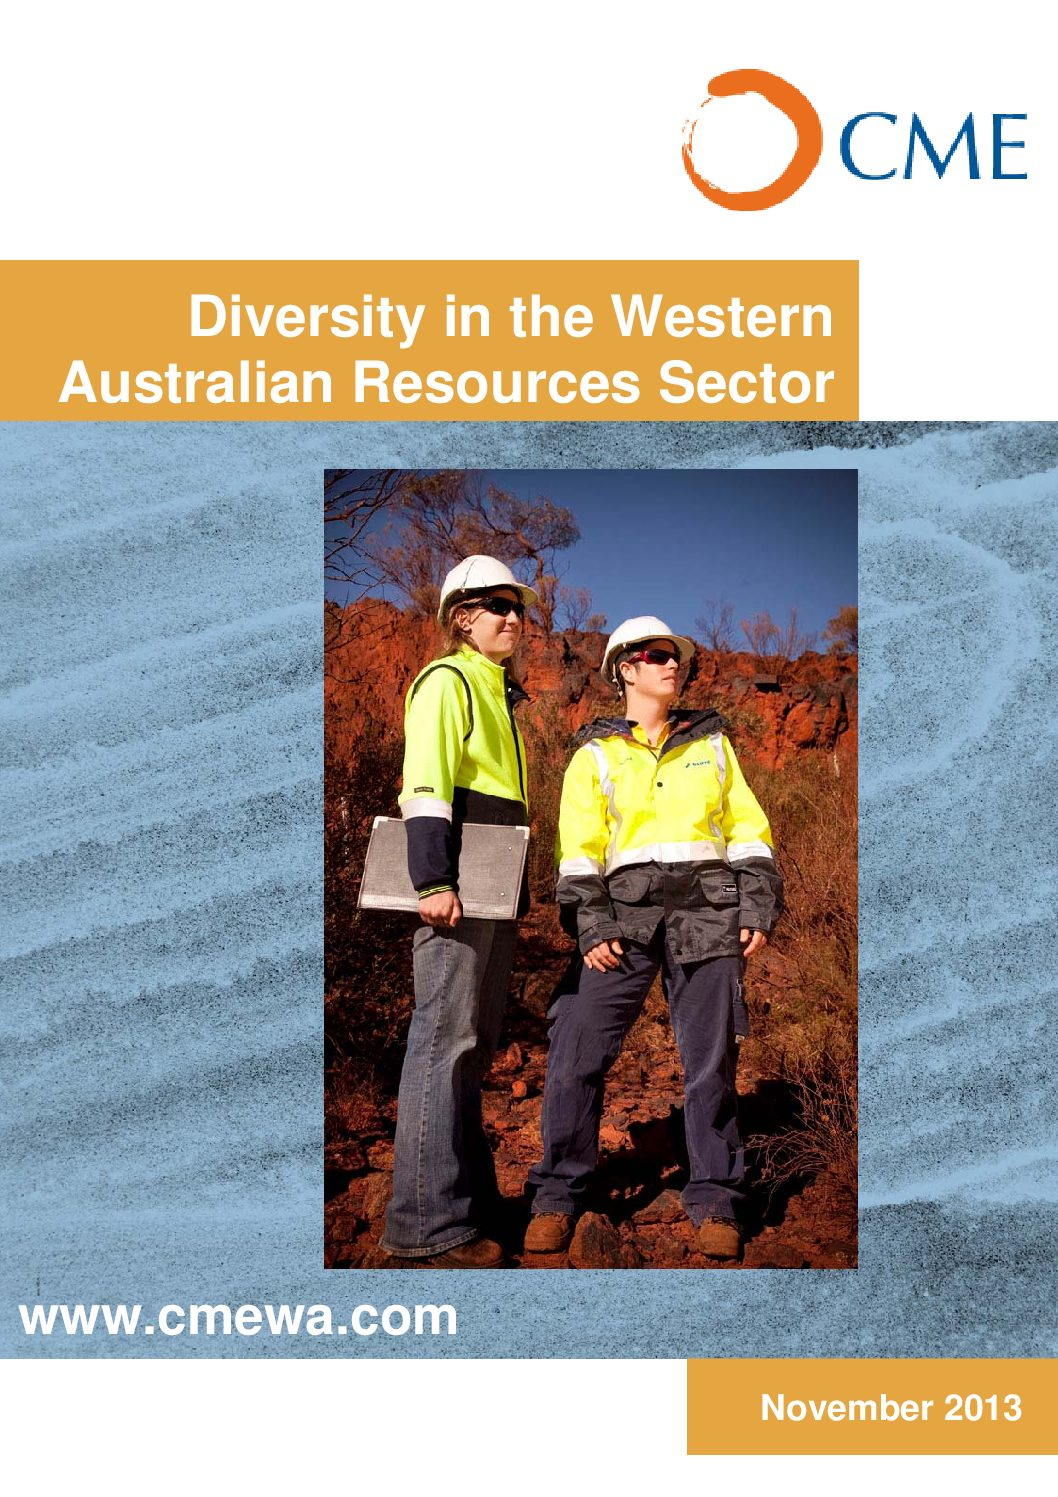 Diversity in the Western Australian Resources Sector Survey Report 2013